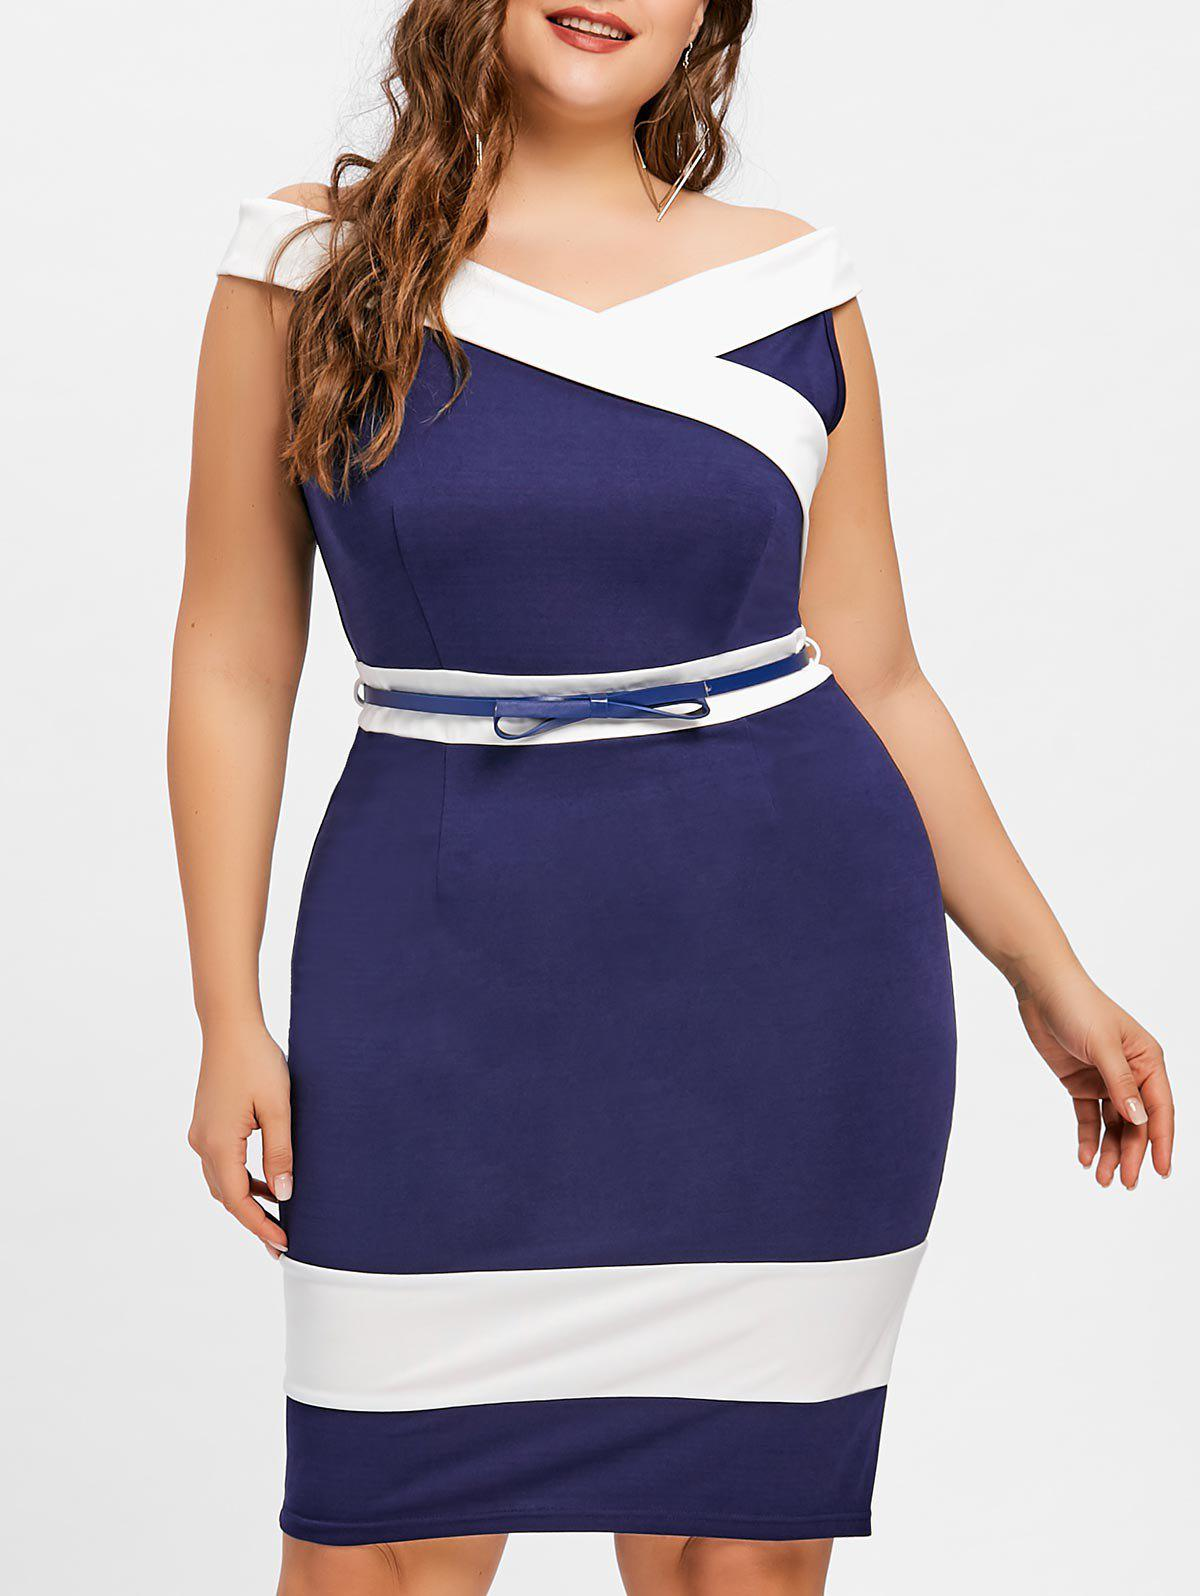 Plus Size Knee Length Two Tone Dress plus size belted knee length dress with pockets